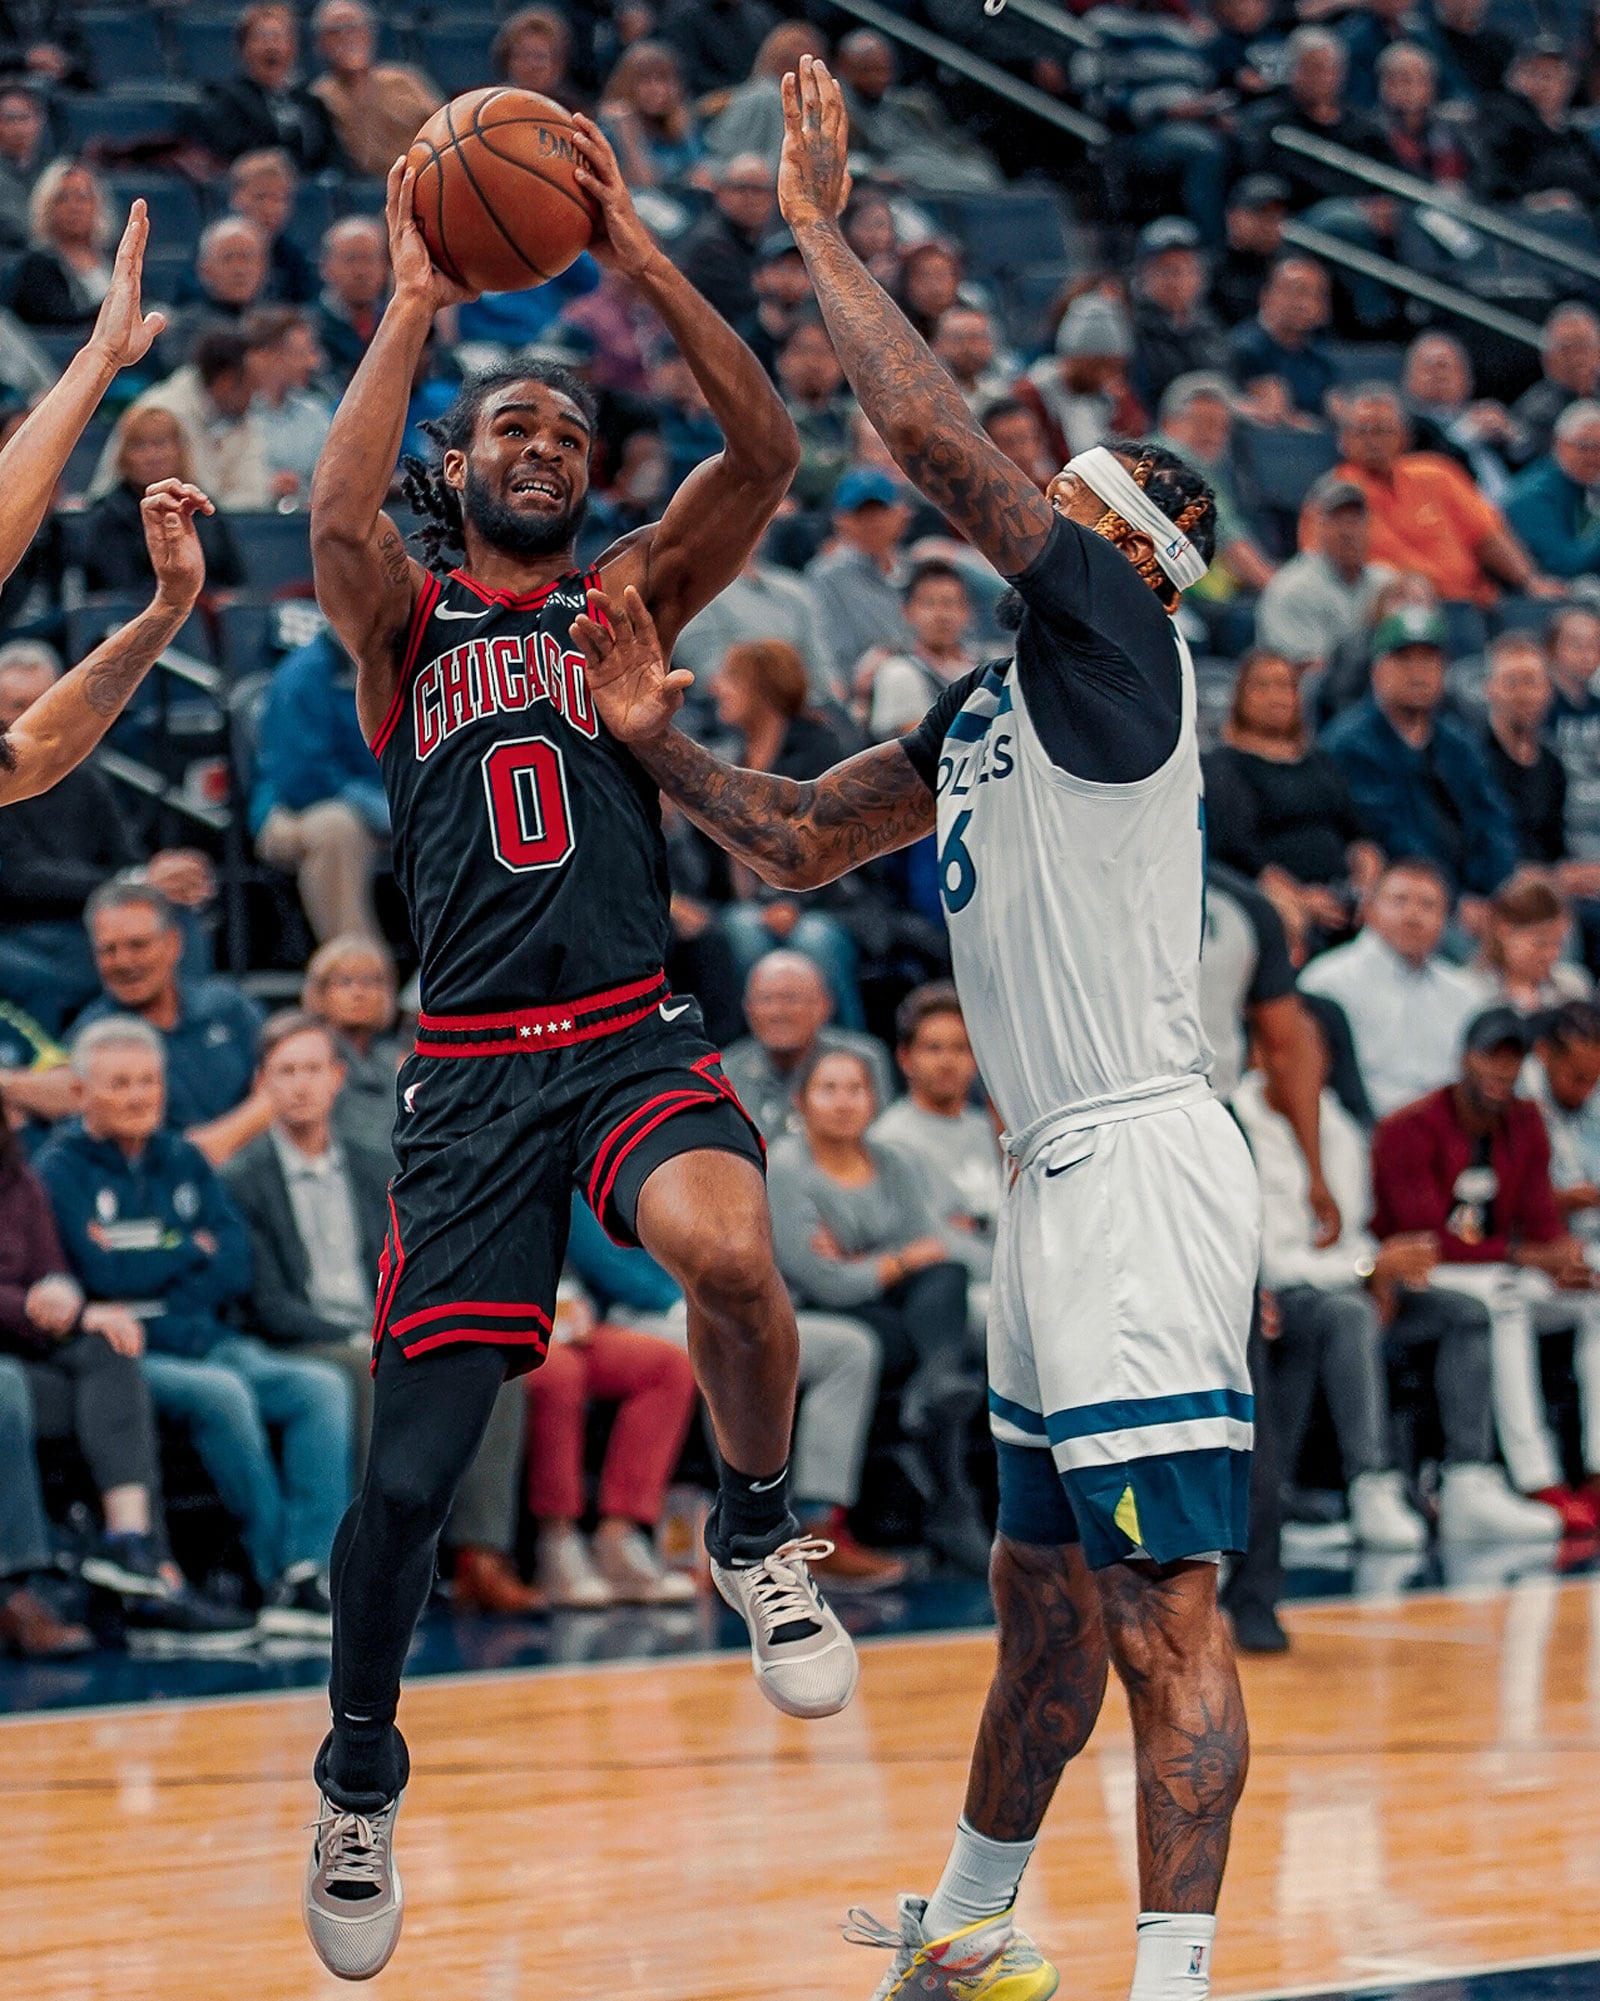 Coby White scored 26 points against the Dallas Mavericks.